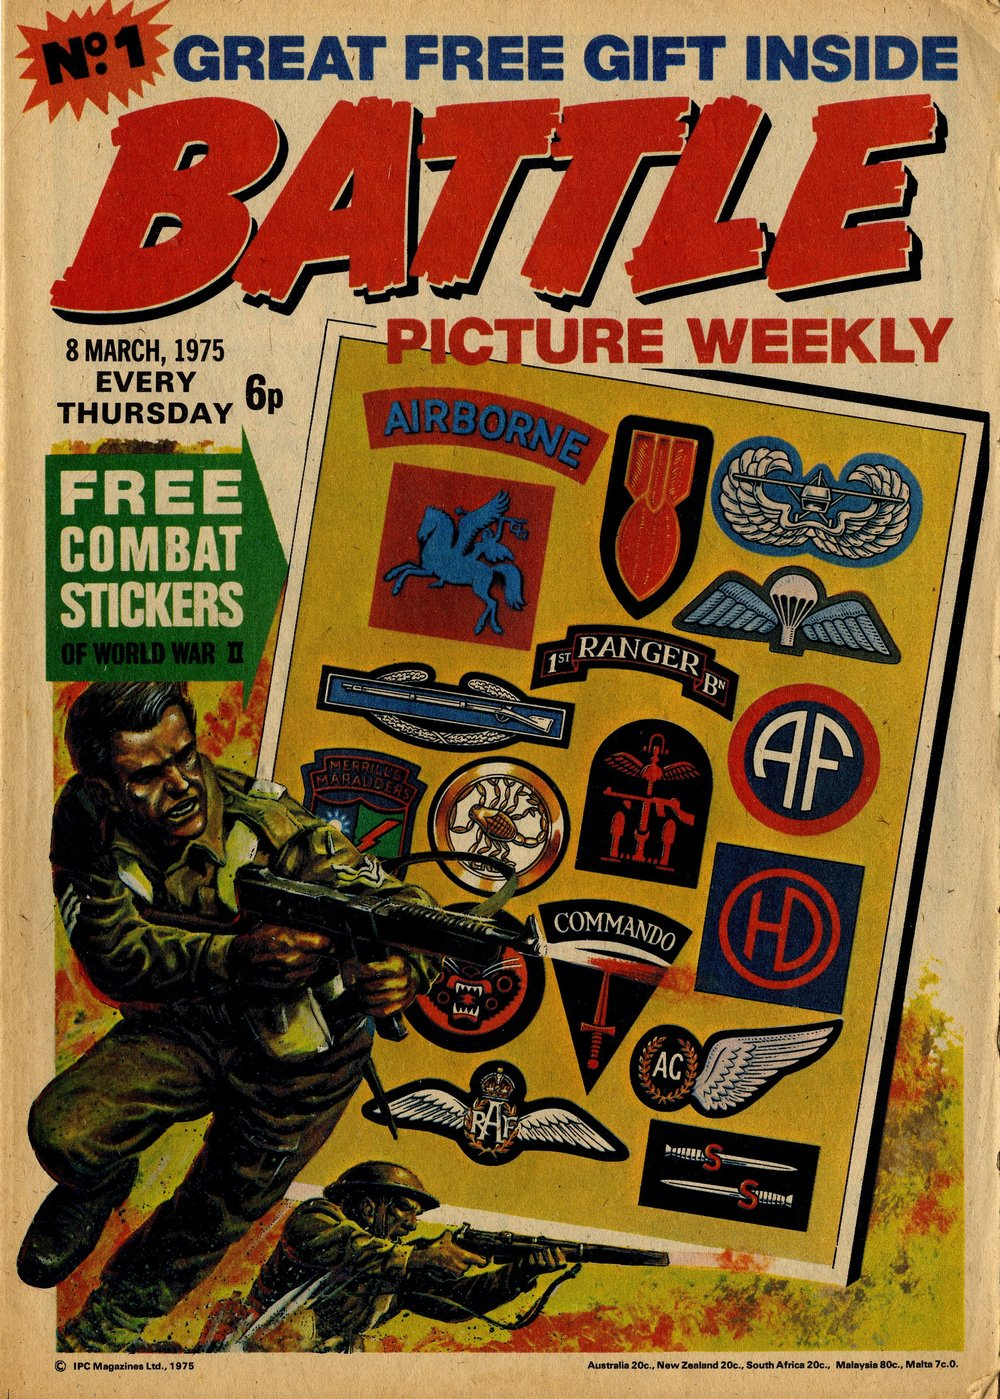 The first issue of Battle Picture Weekly, 8 March 1975